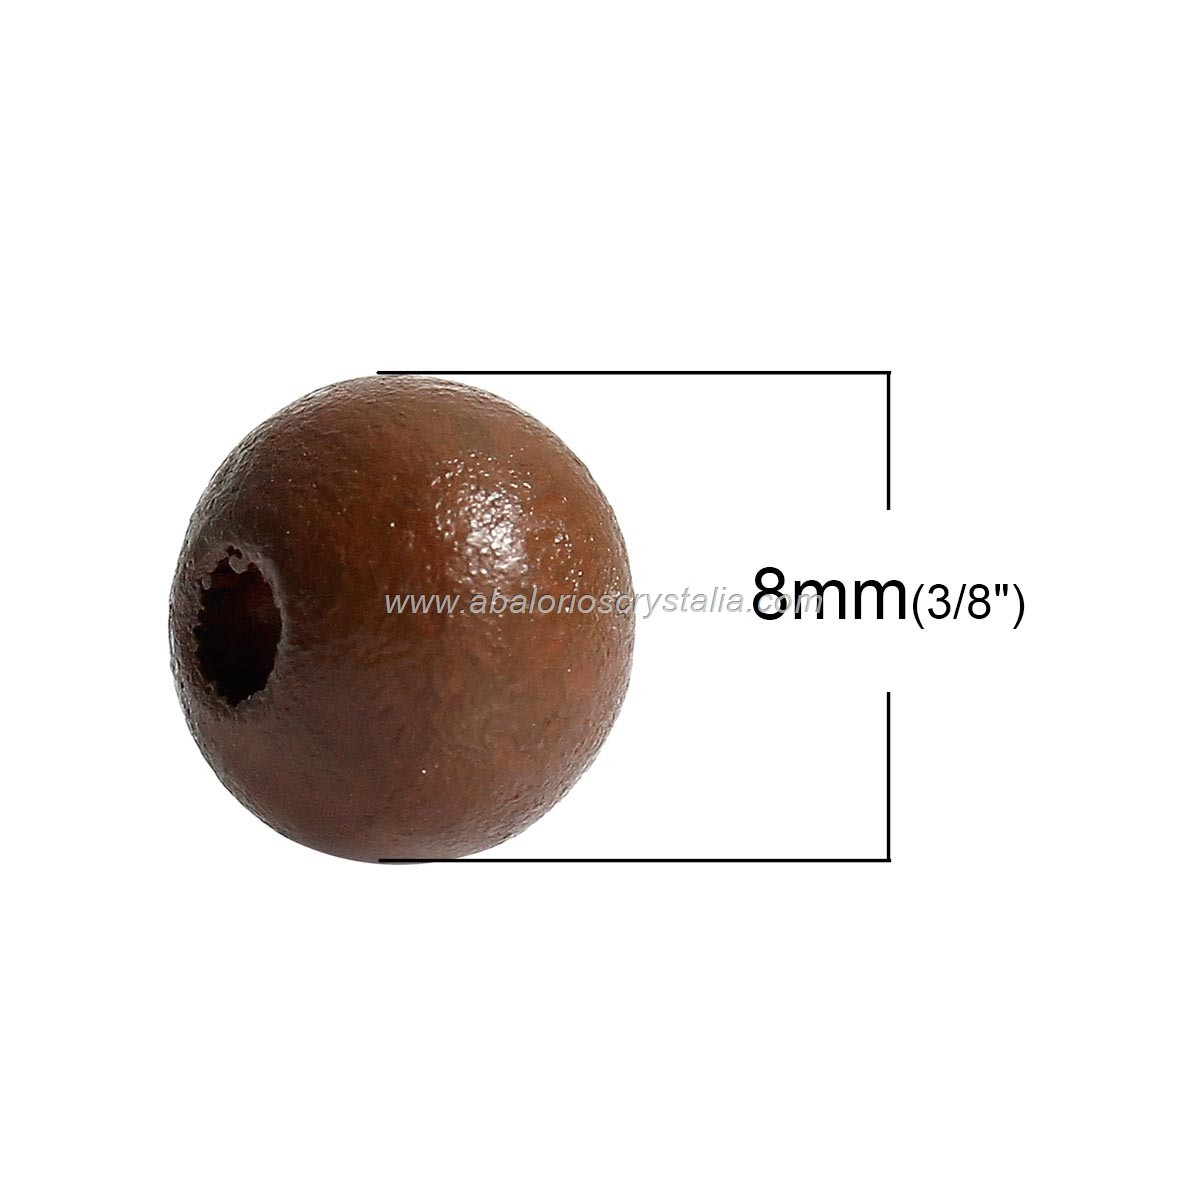 25 BOLAS DE MADERA MARRÓN 2, 8mm